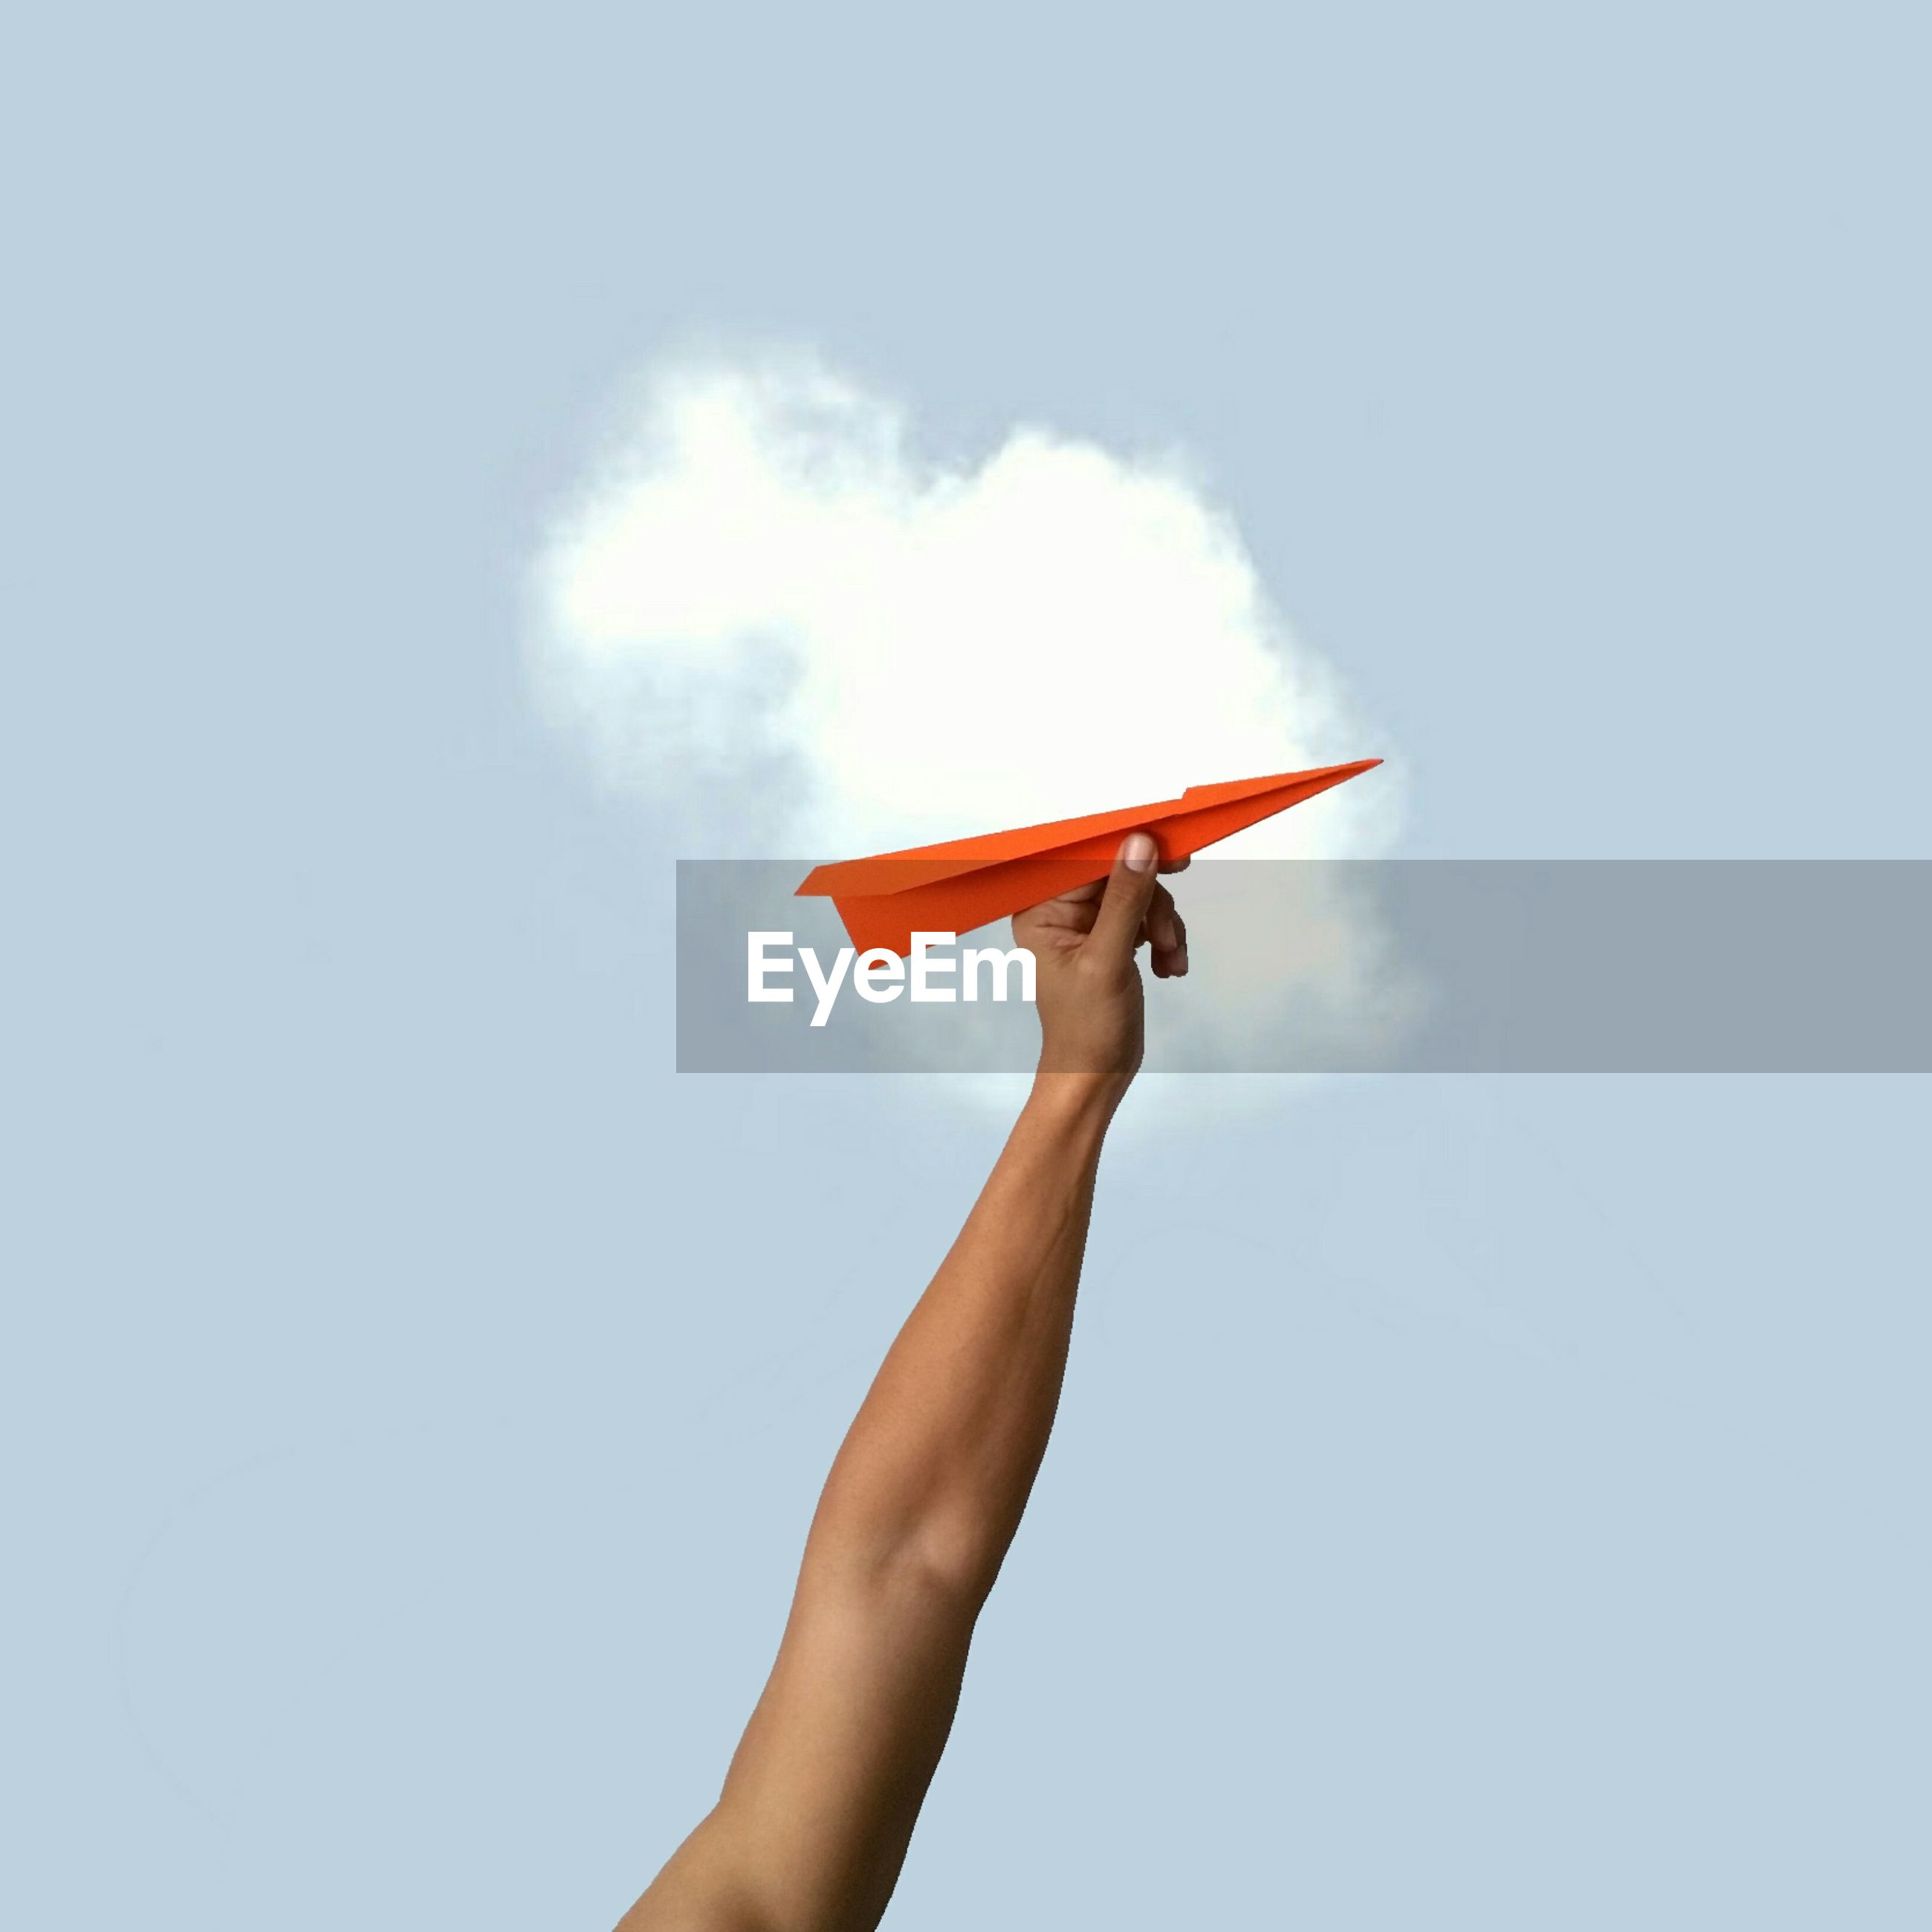 Low angle view of cropped hand holding orange paper rocket against sky